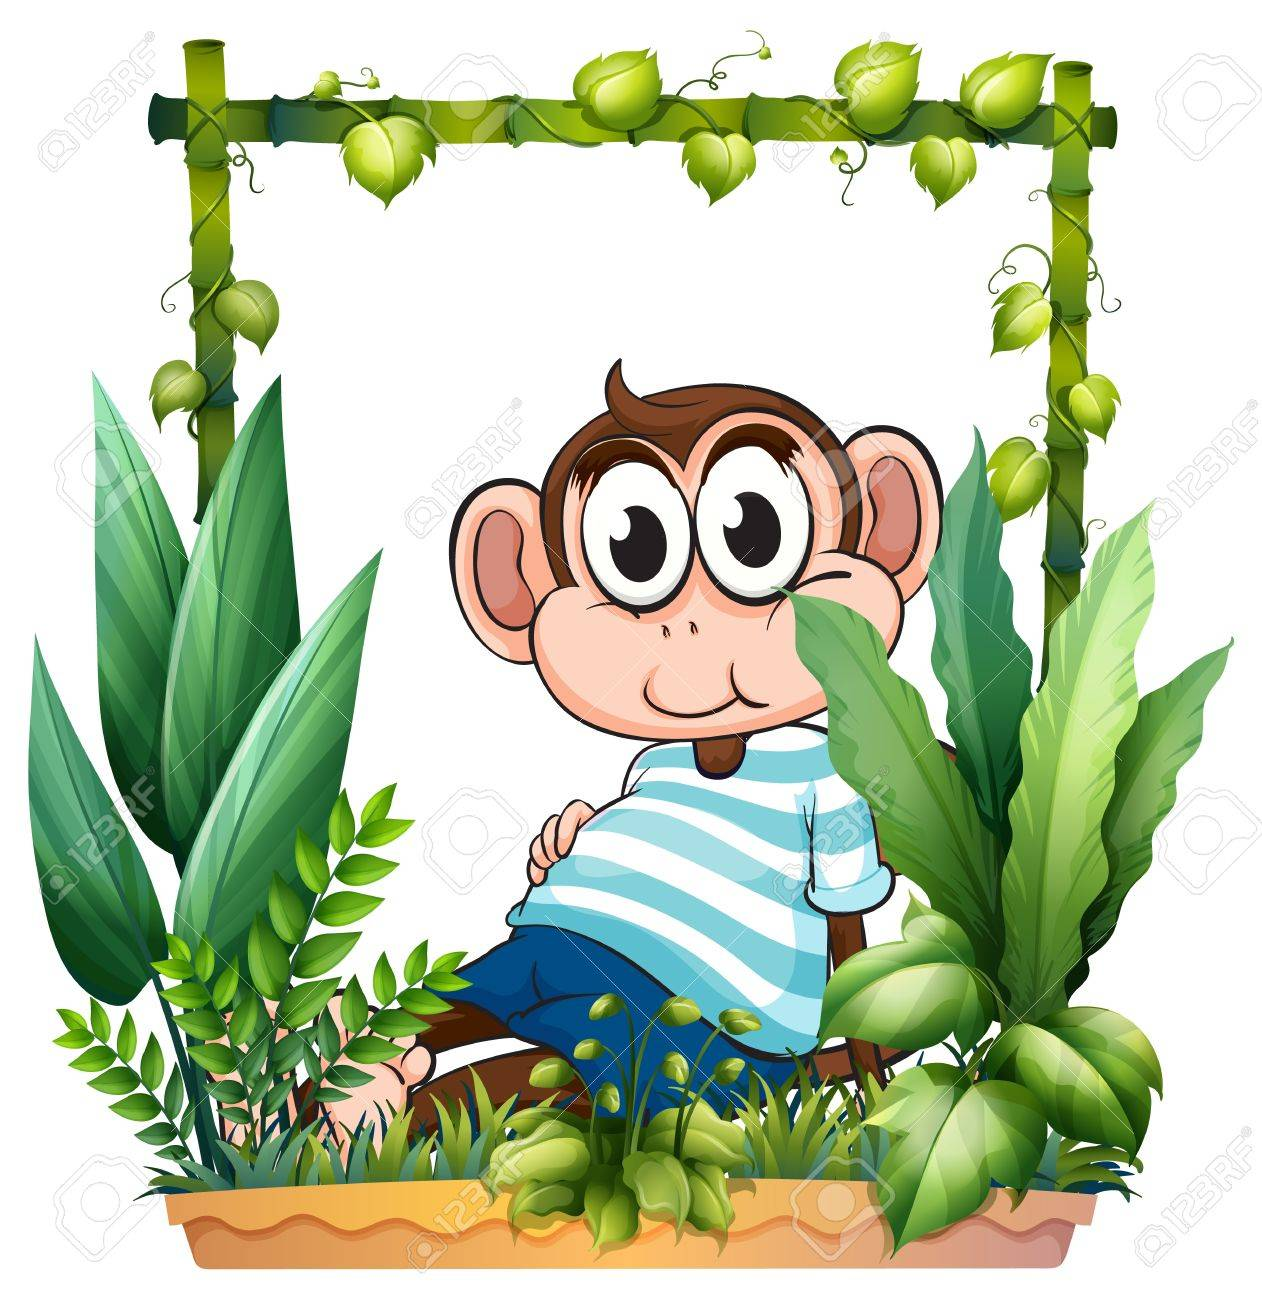 Illustration of a monkey with a blue shirt in the garden on a white background Stock Vector - 17892706